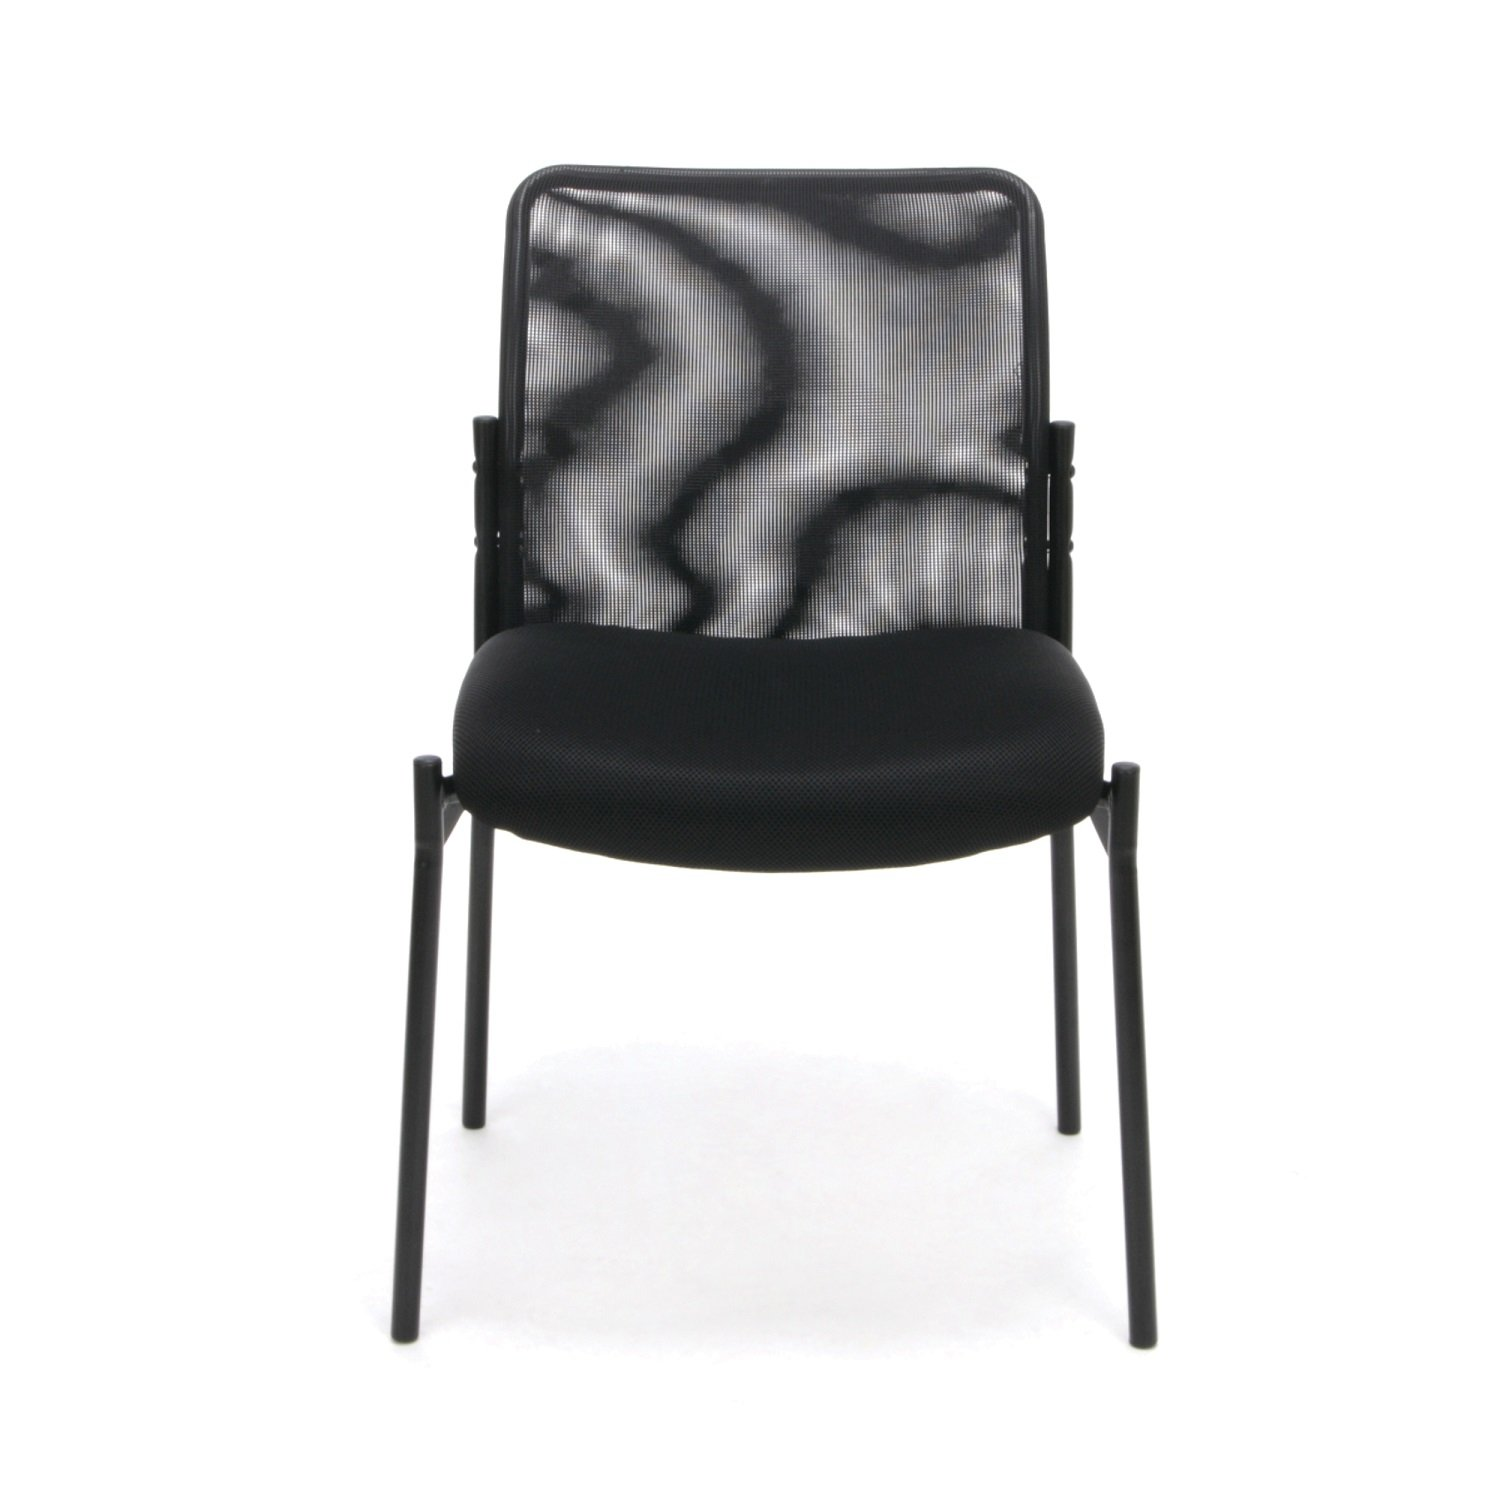 Amazon Essentials Mesh Upholstered Stacking Armless Guest